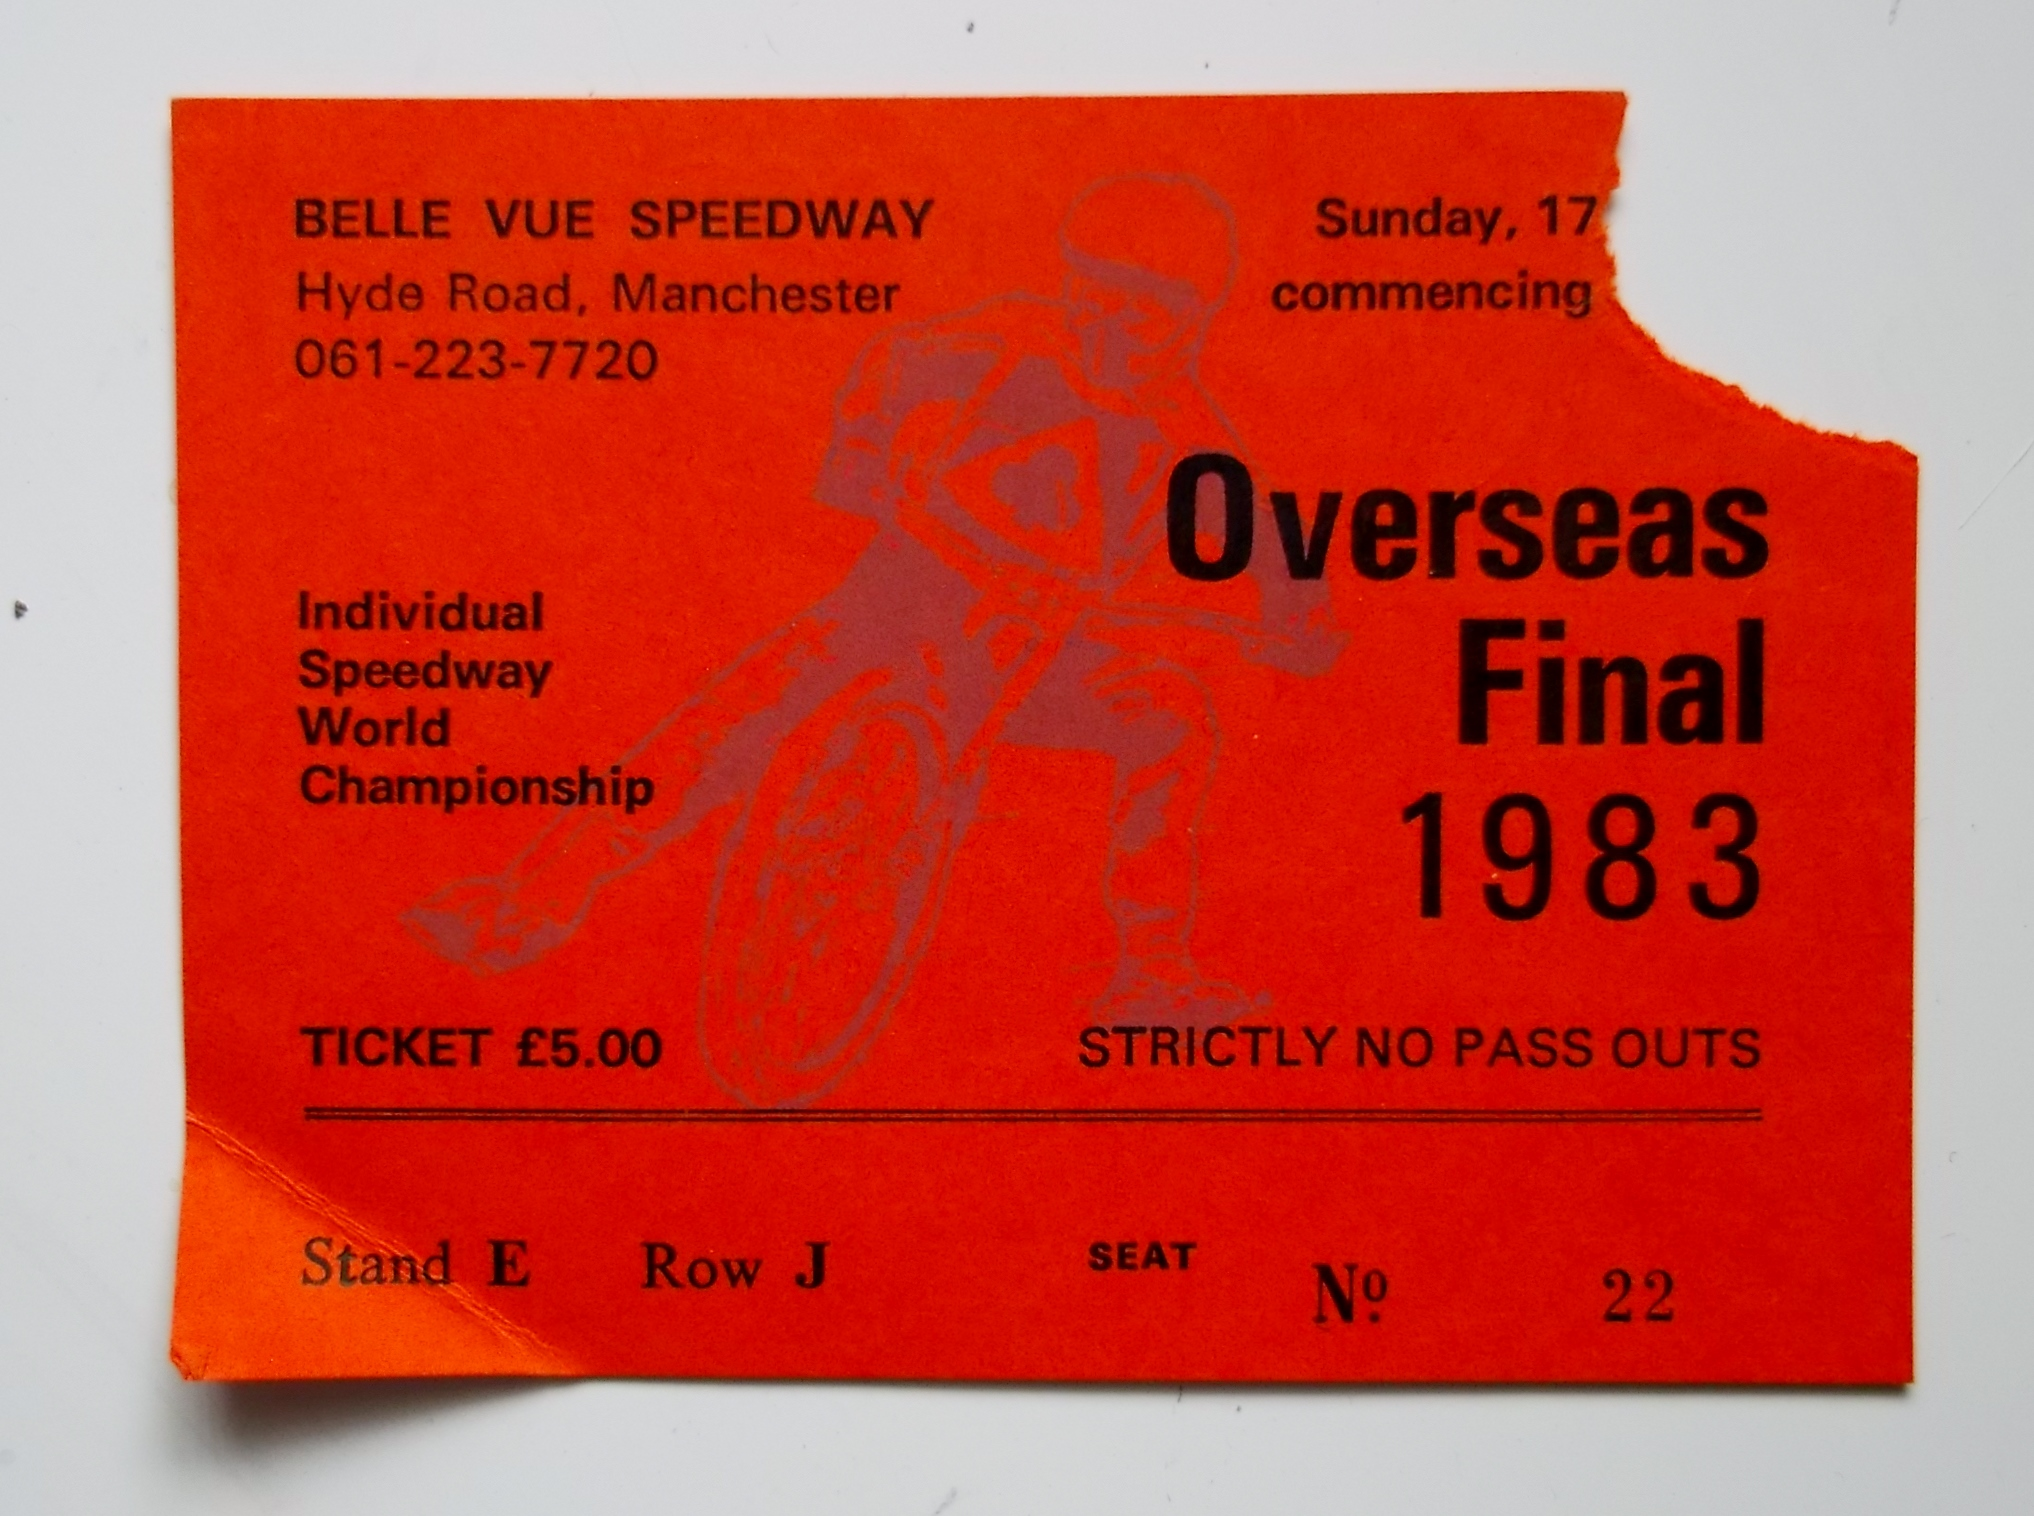 SPEEDWAY - 1983 OVERSEAS FINAL WORLD CHAMPIONSHIP AT BELLE VUE - PROGRAMME & TICKET - Image 2 of 2